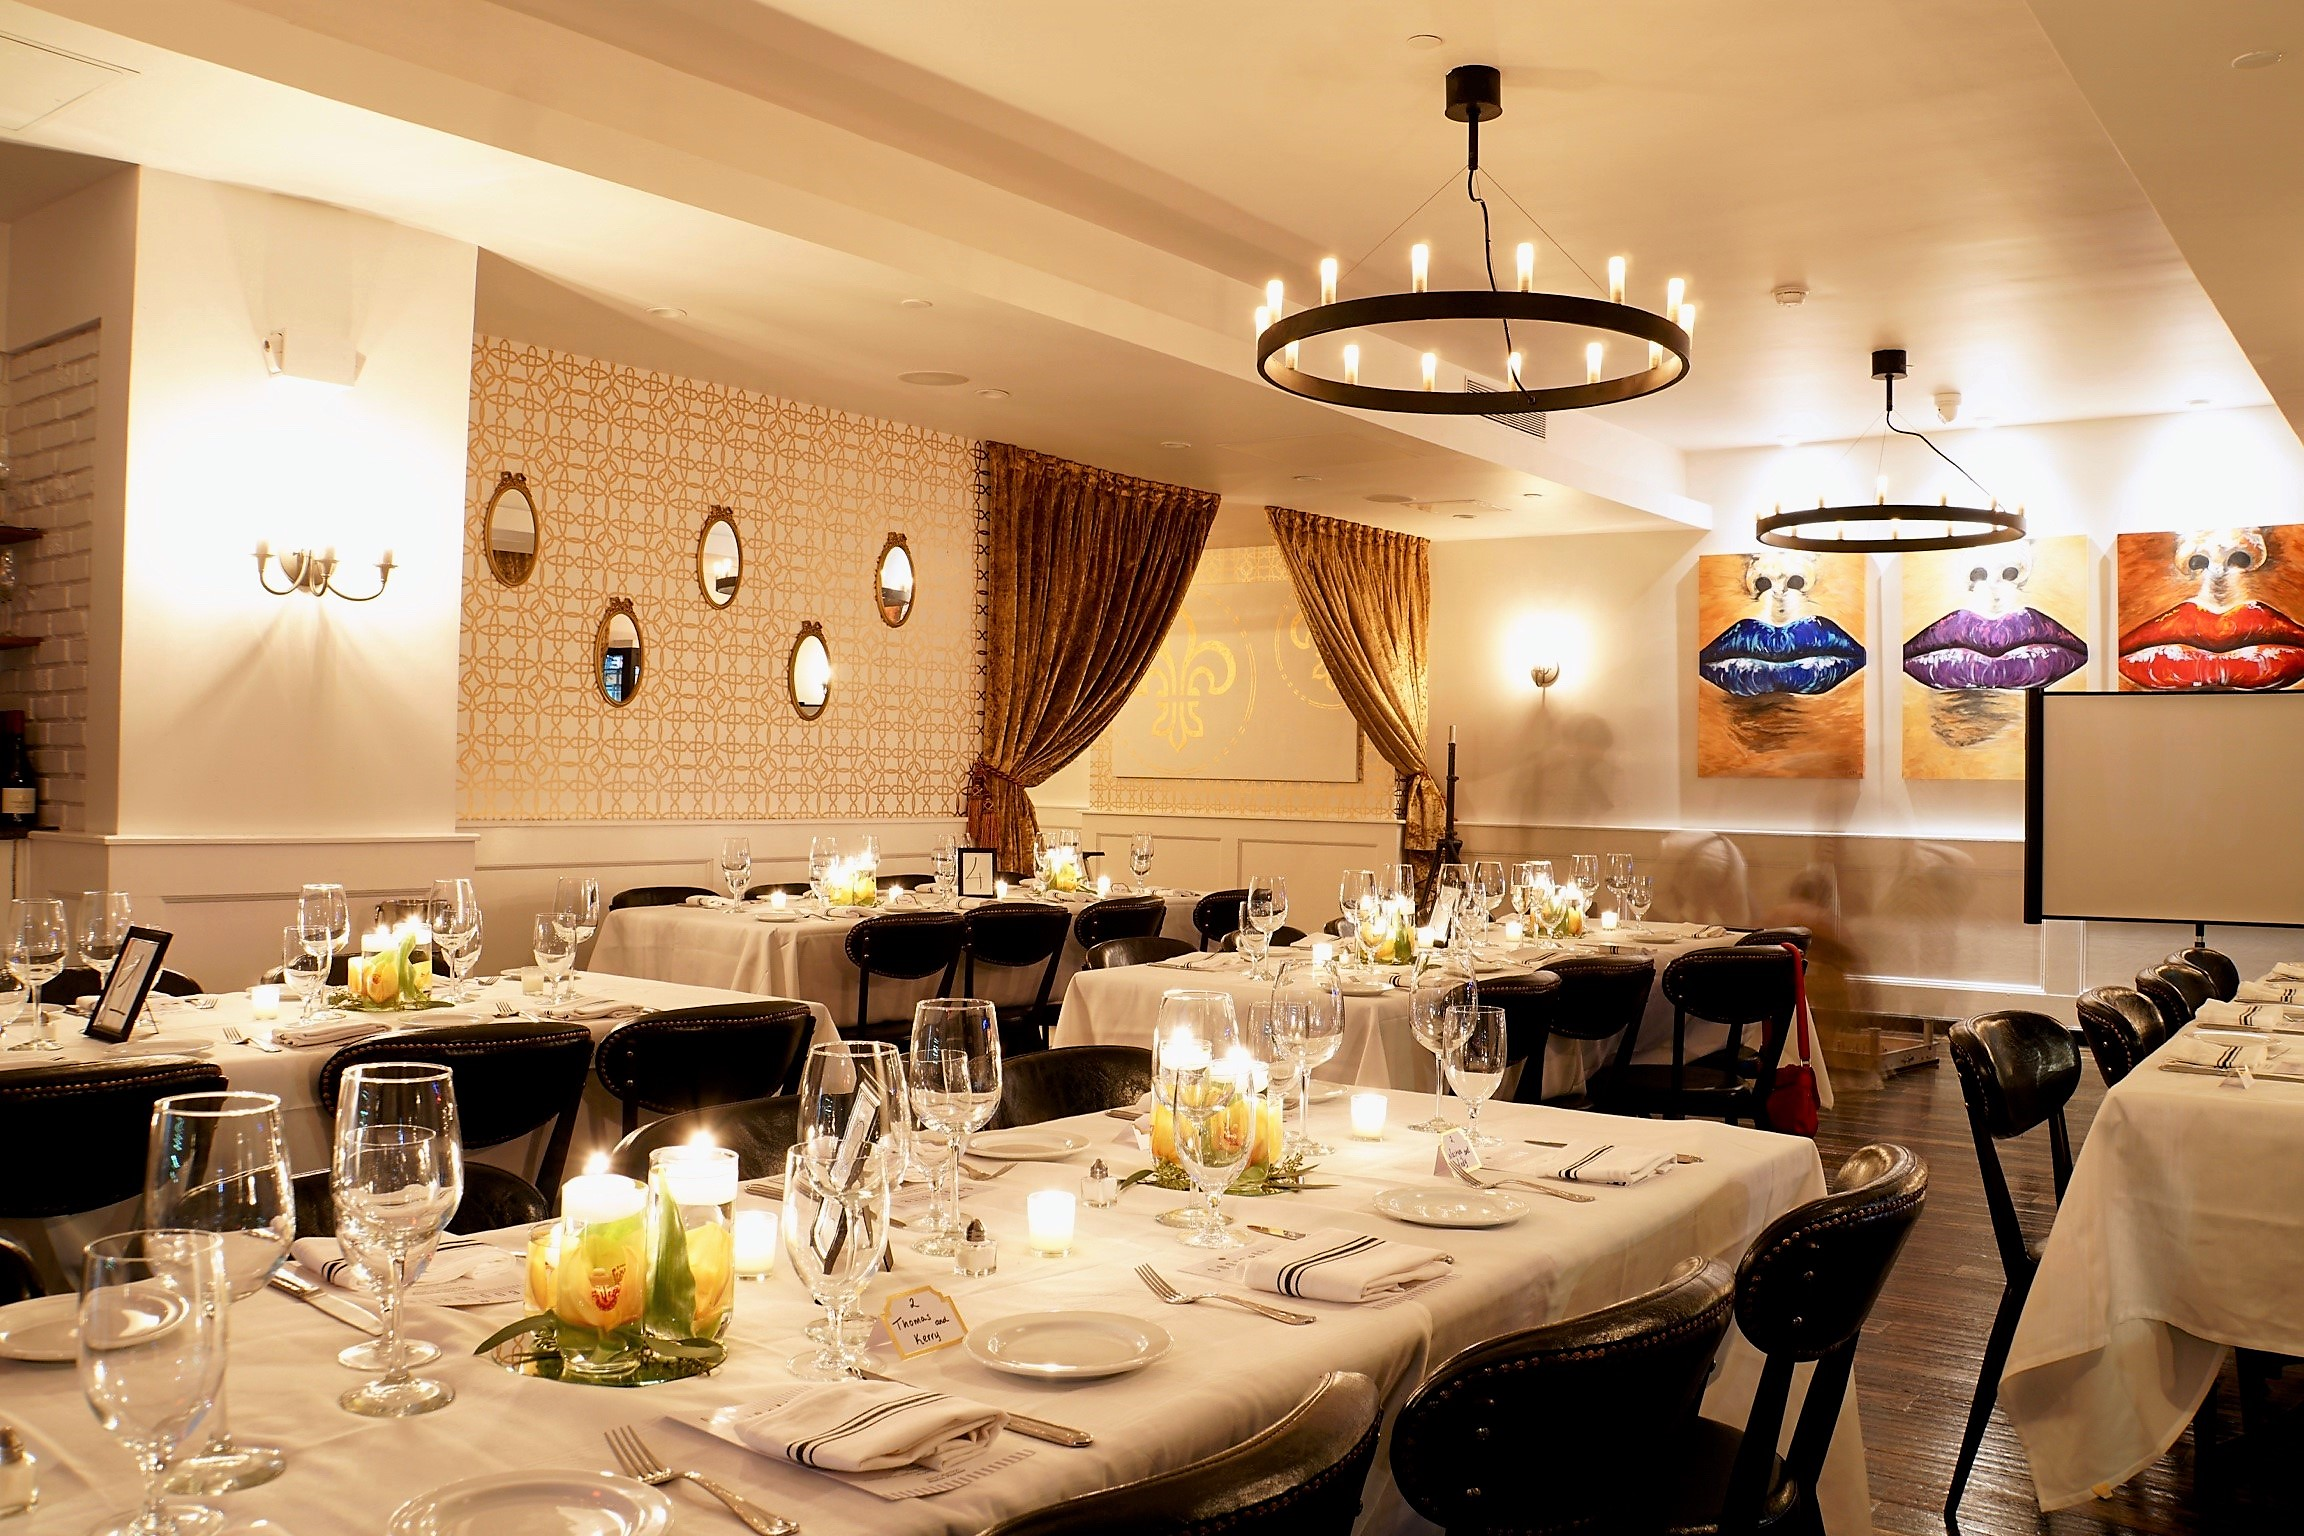 Main Room event space at Copinette in New York City, NYC, NY/NJ Area